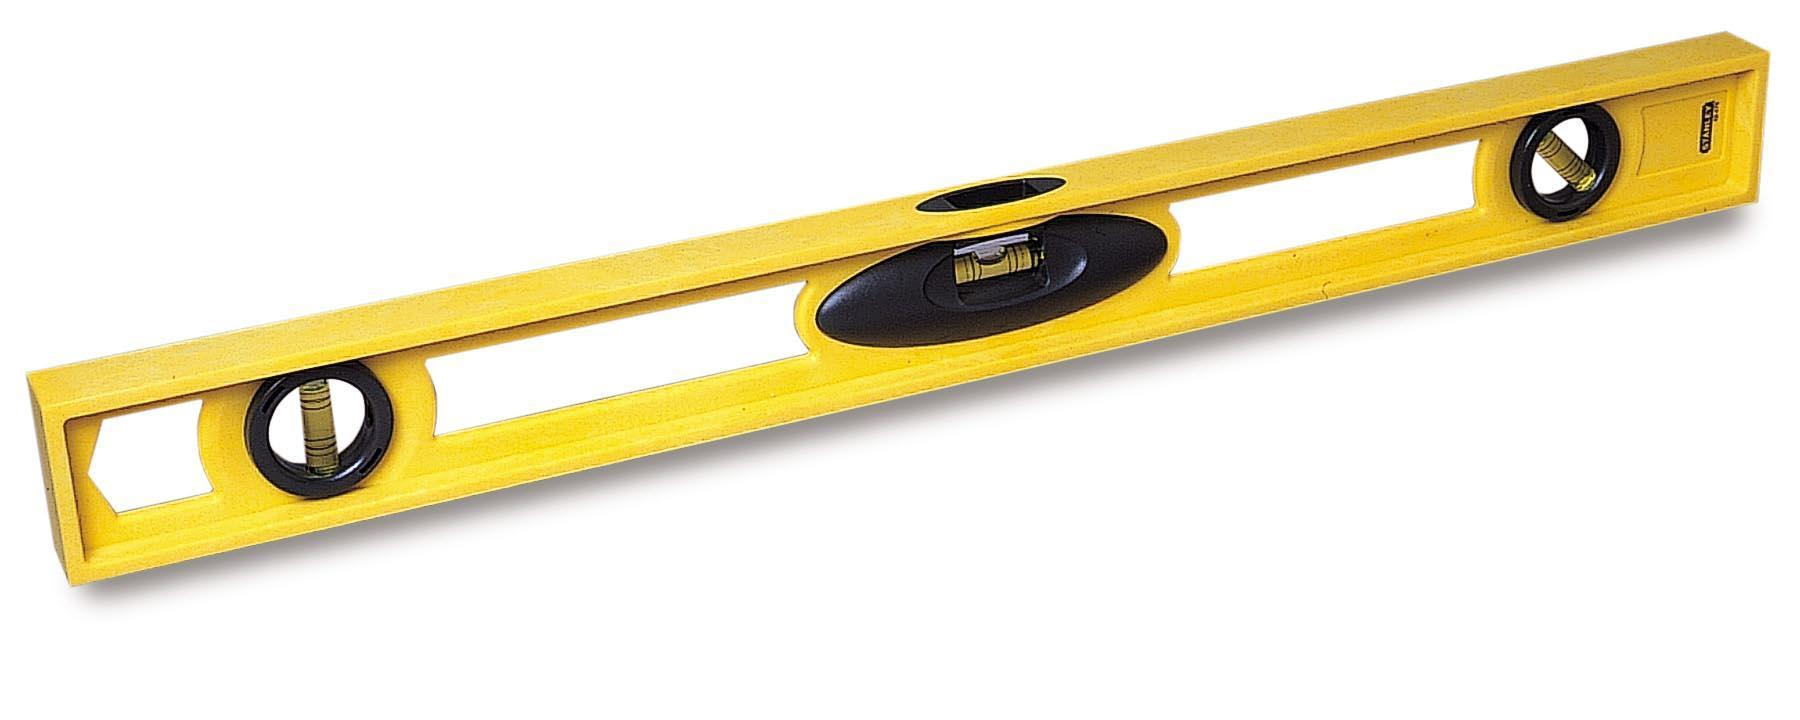 Stanley High Impact Spirit Level 3 Vial 600mm Ref 1-42-476